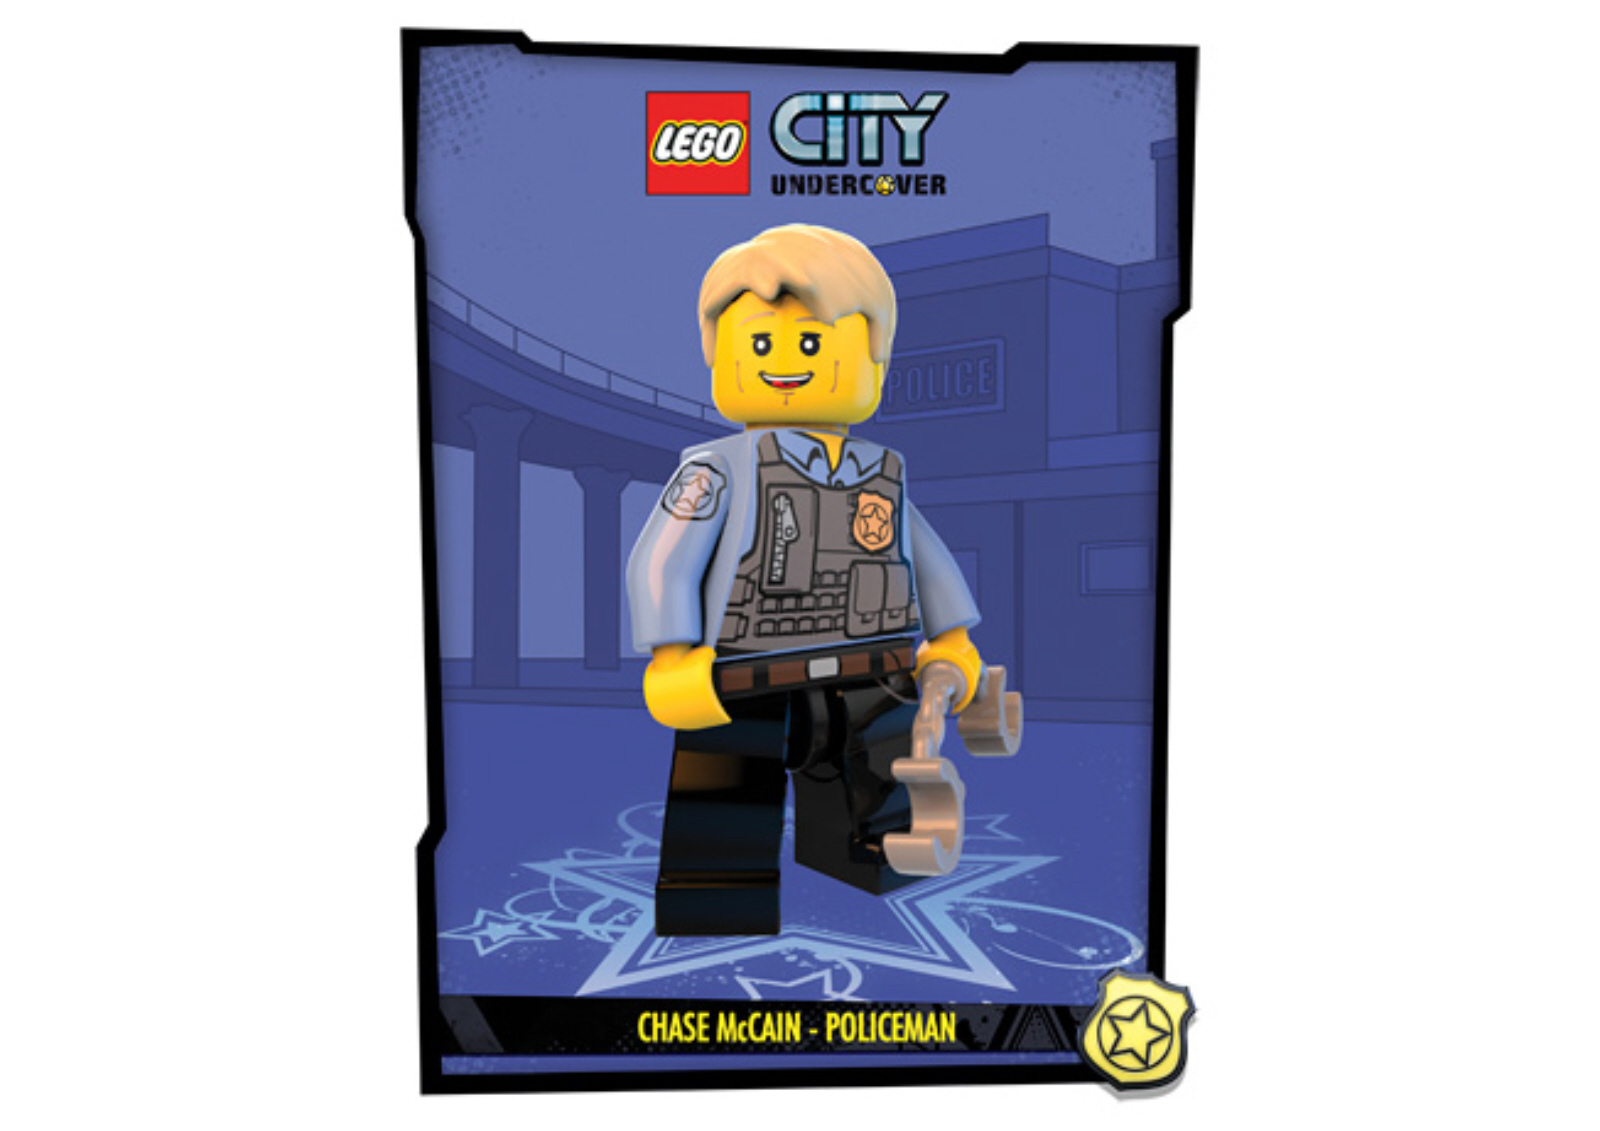 This is Lego City  UnderCover Artwork of Chase McCain as a Cop Lego City Undercover Chase Mccain Civilian